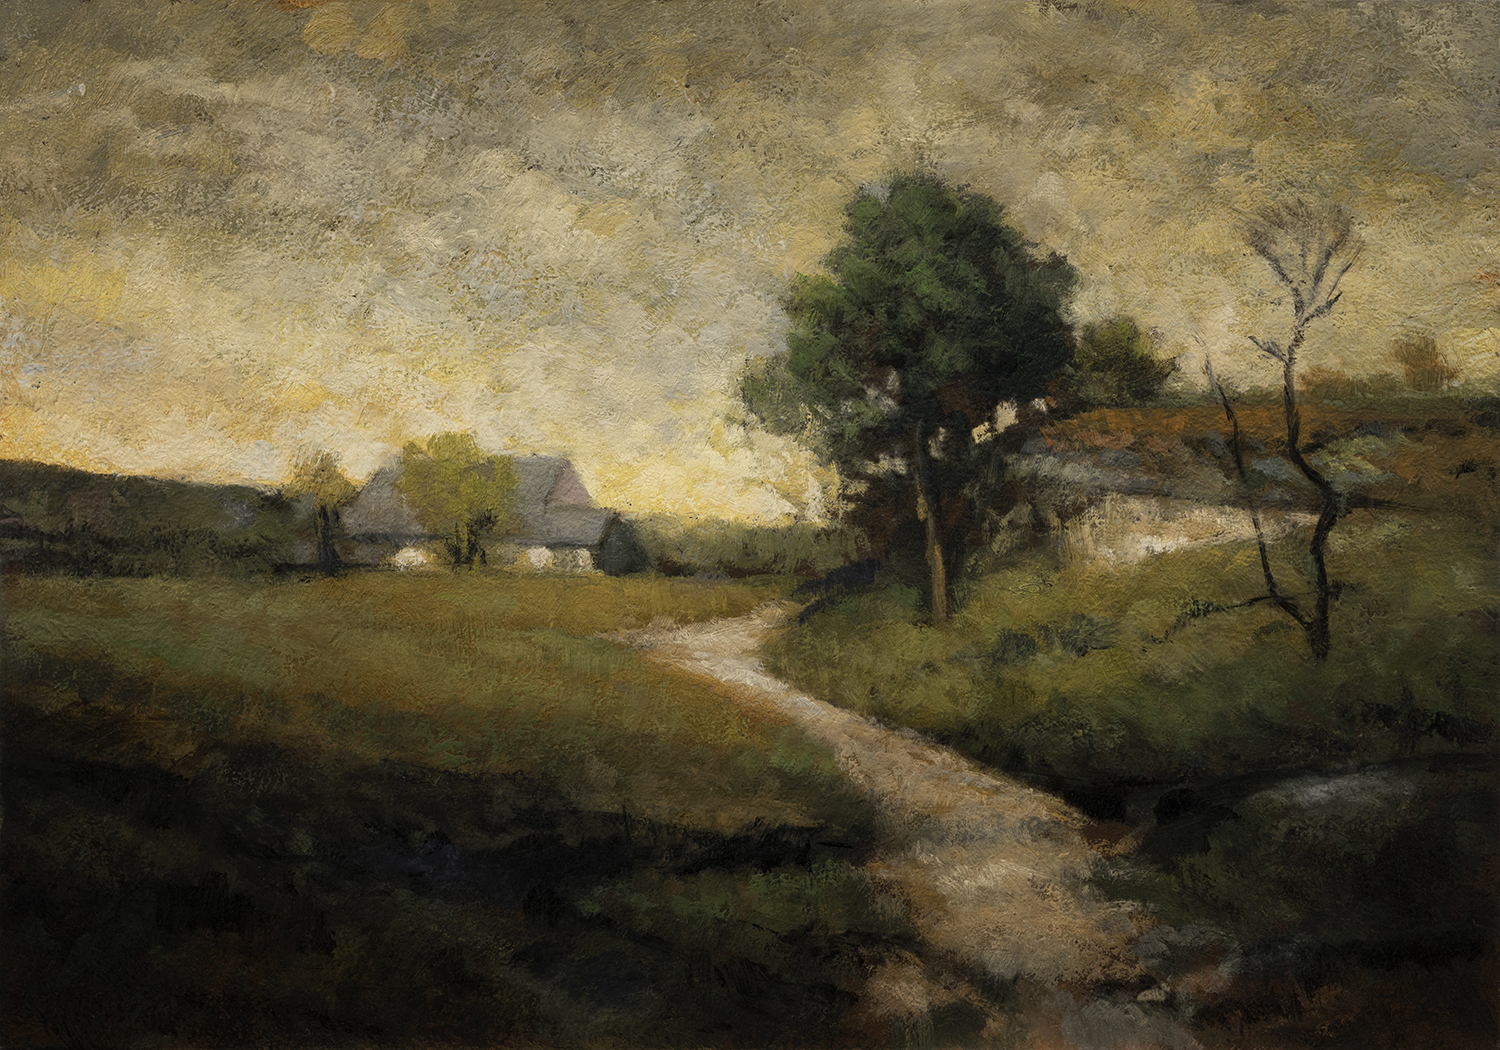 Study after: Alexander H Wyant Arkville Landscape by M Francis McCarthy - 7x10 Oil on Wood Panel